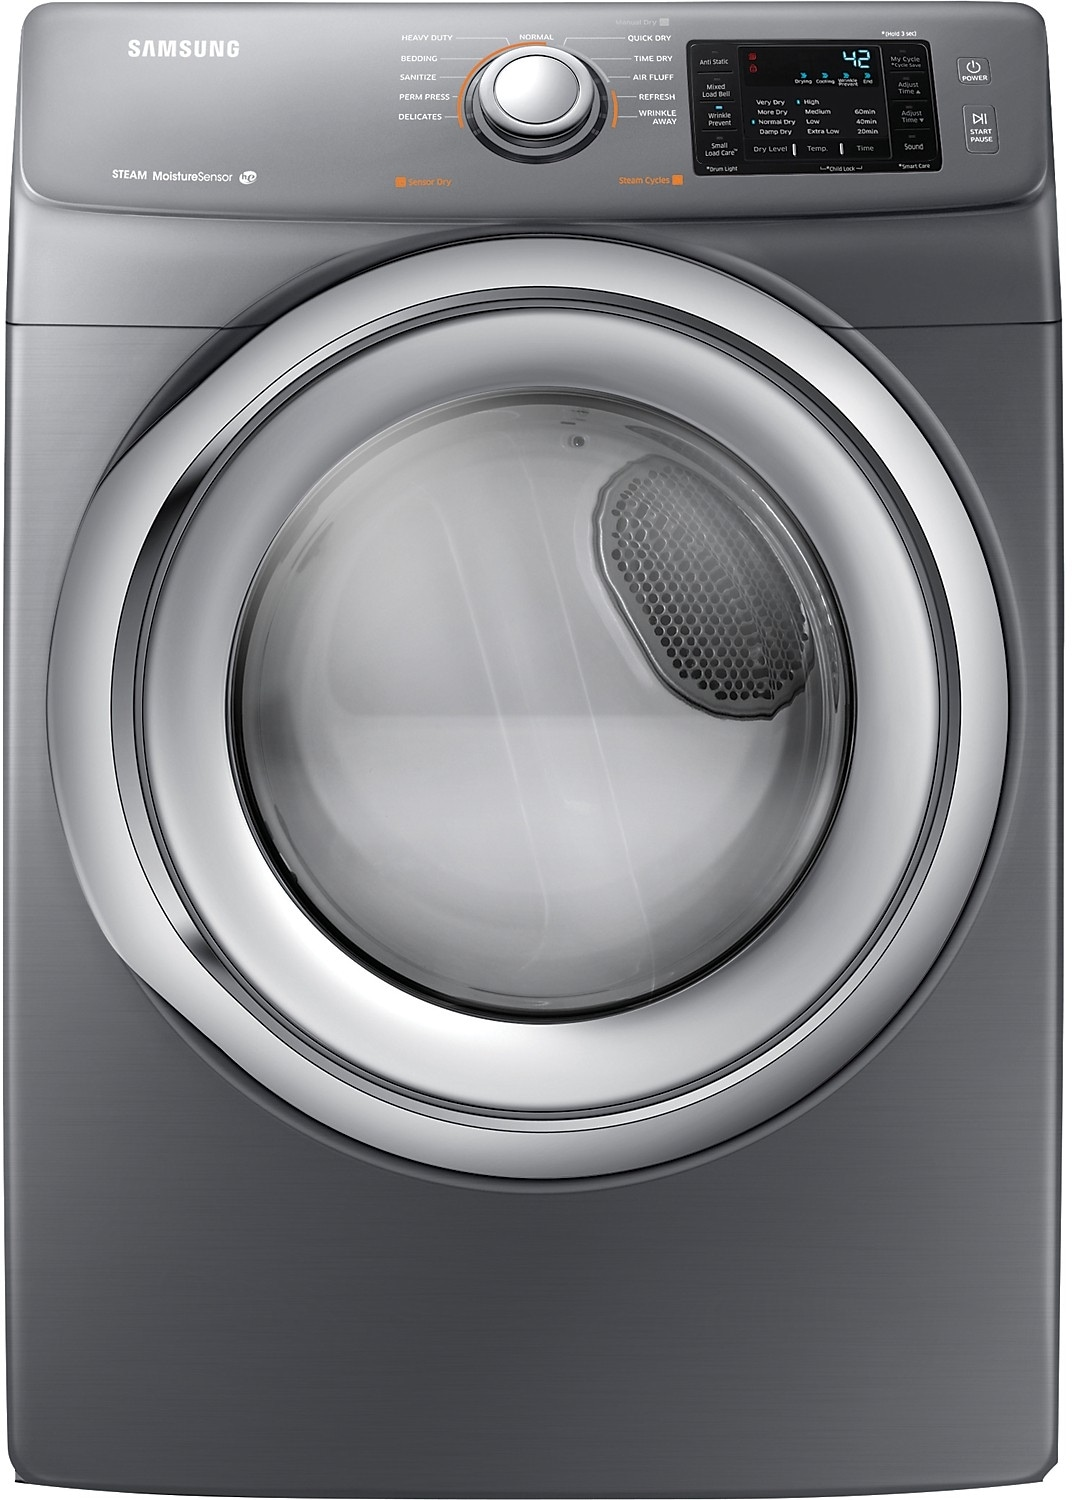 Samsung 7.5 Cu. Ft. Electric Dryer - Platinum